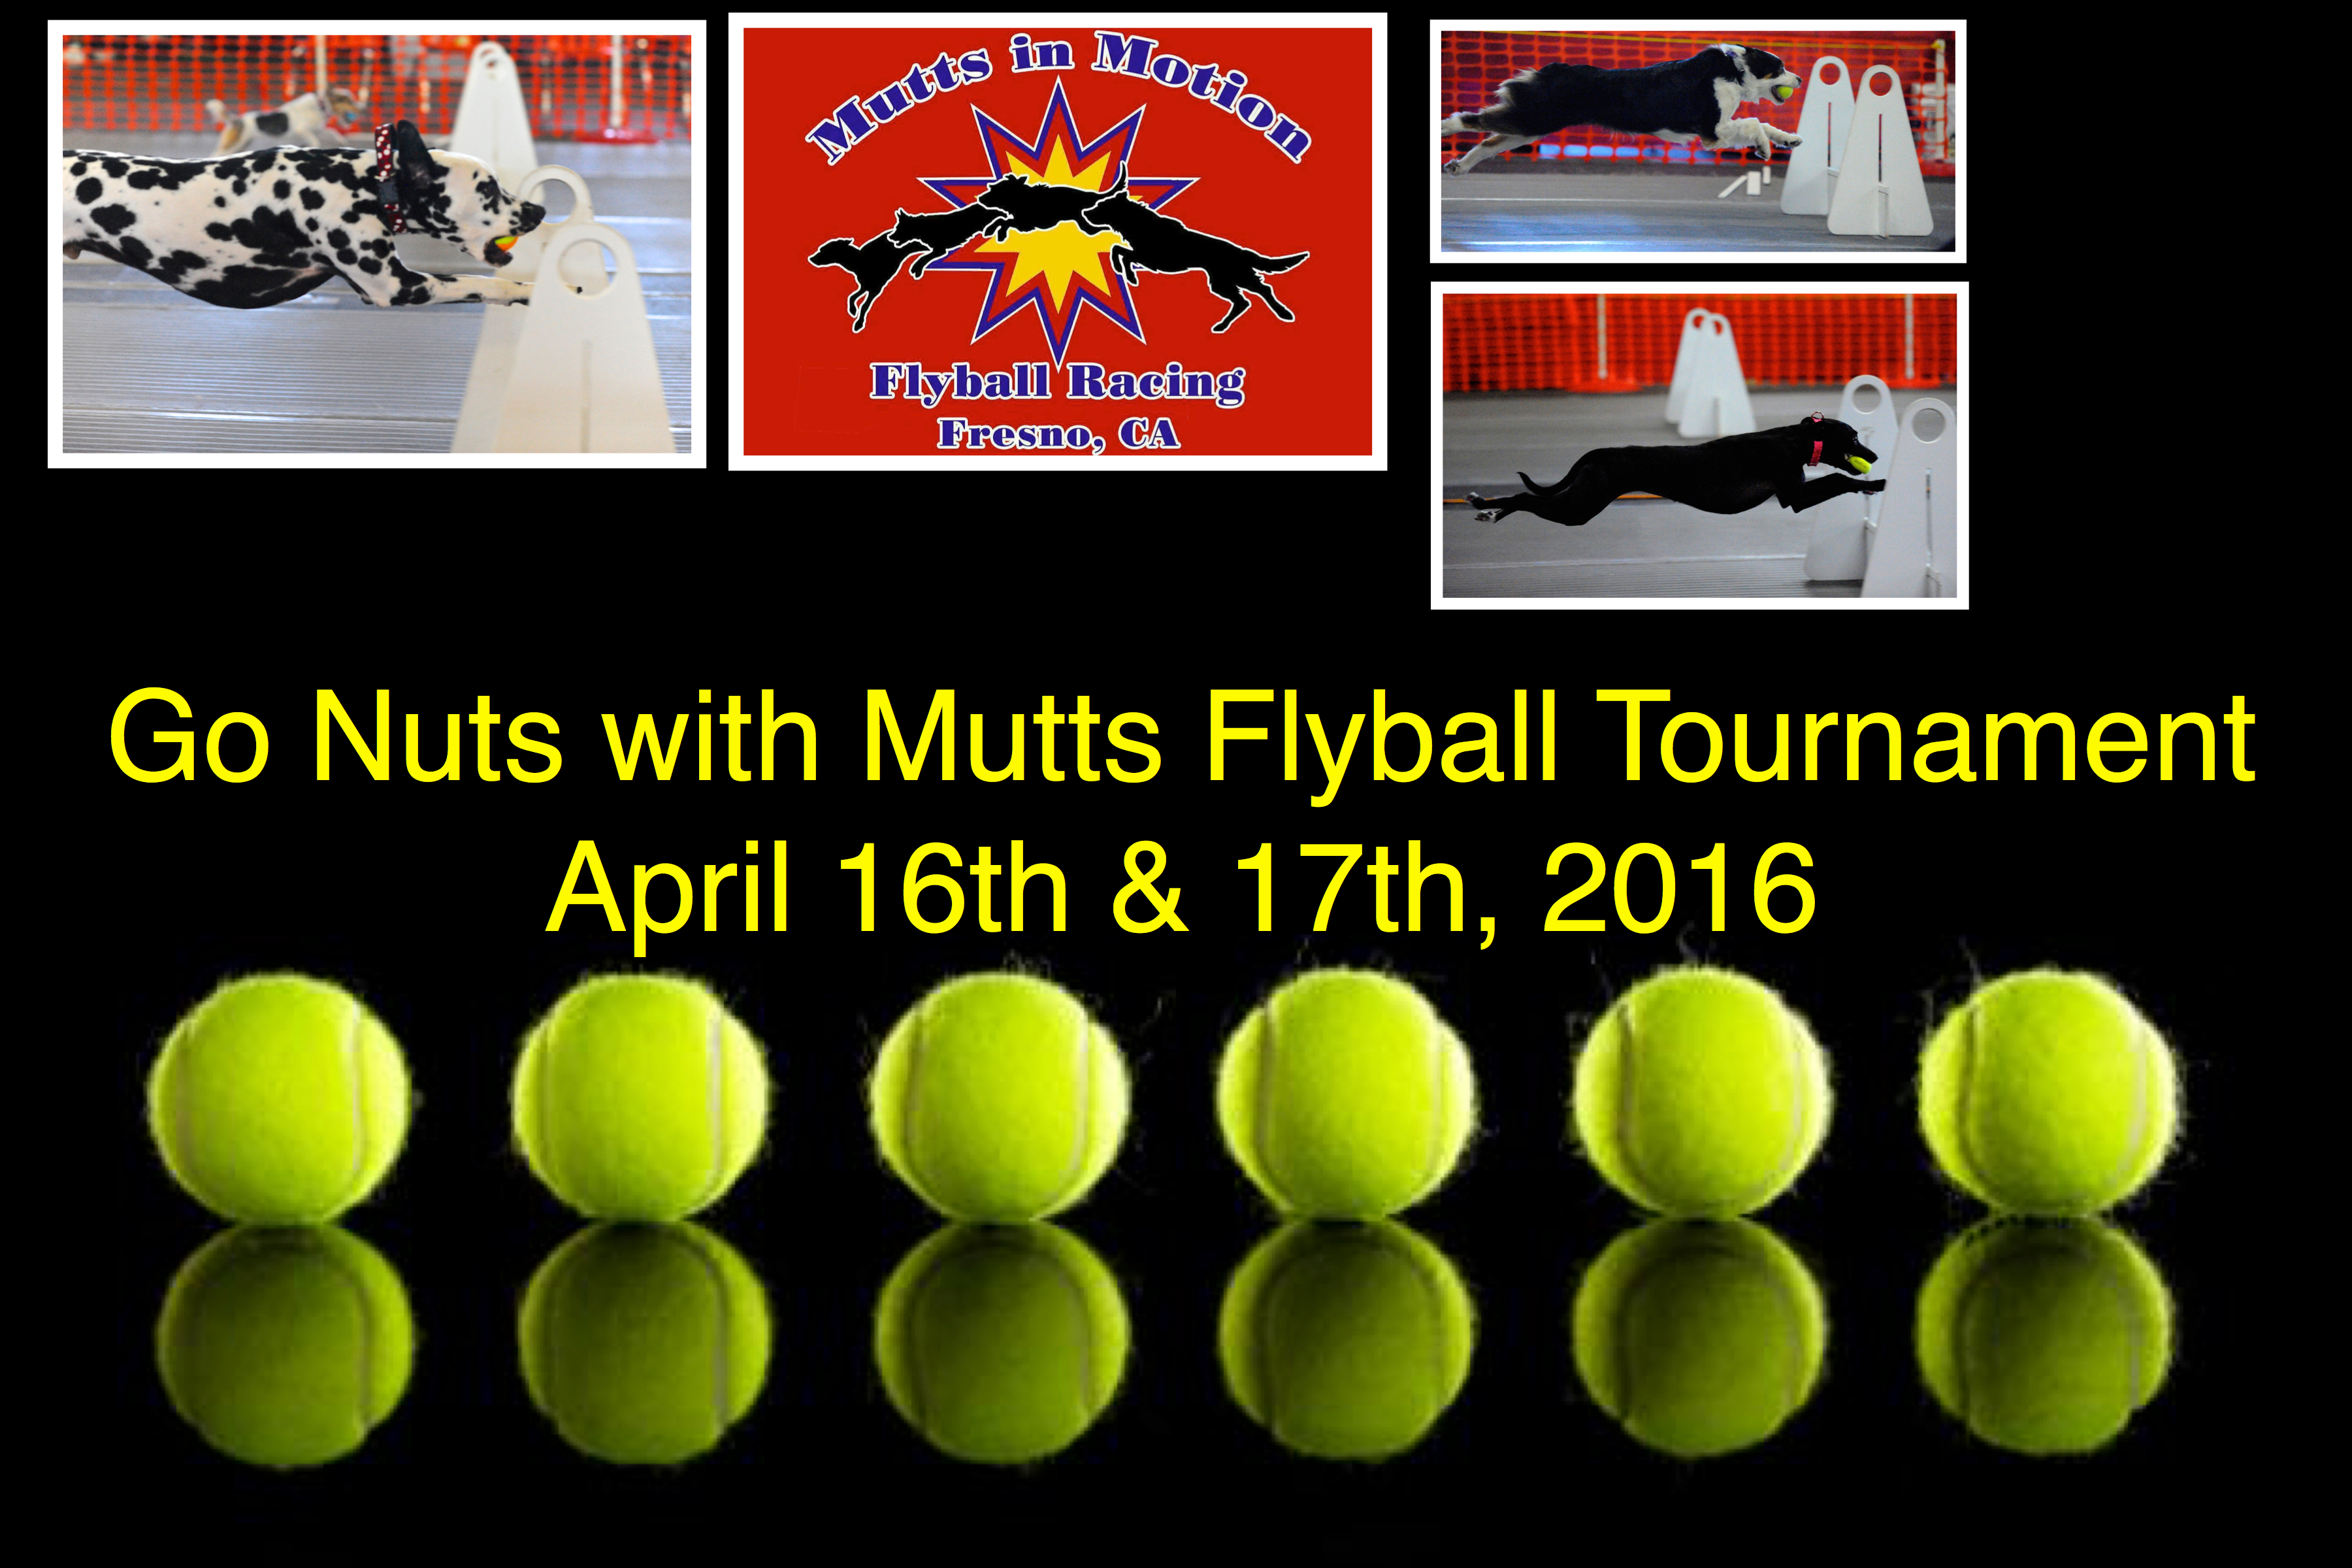 Go Nuts with Mutts 2016